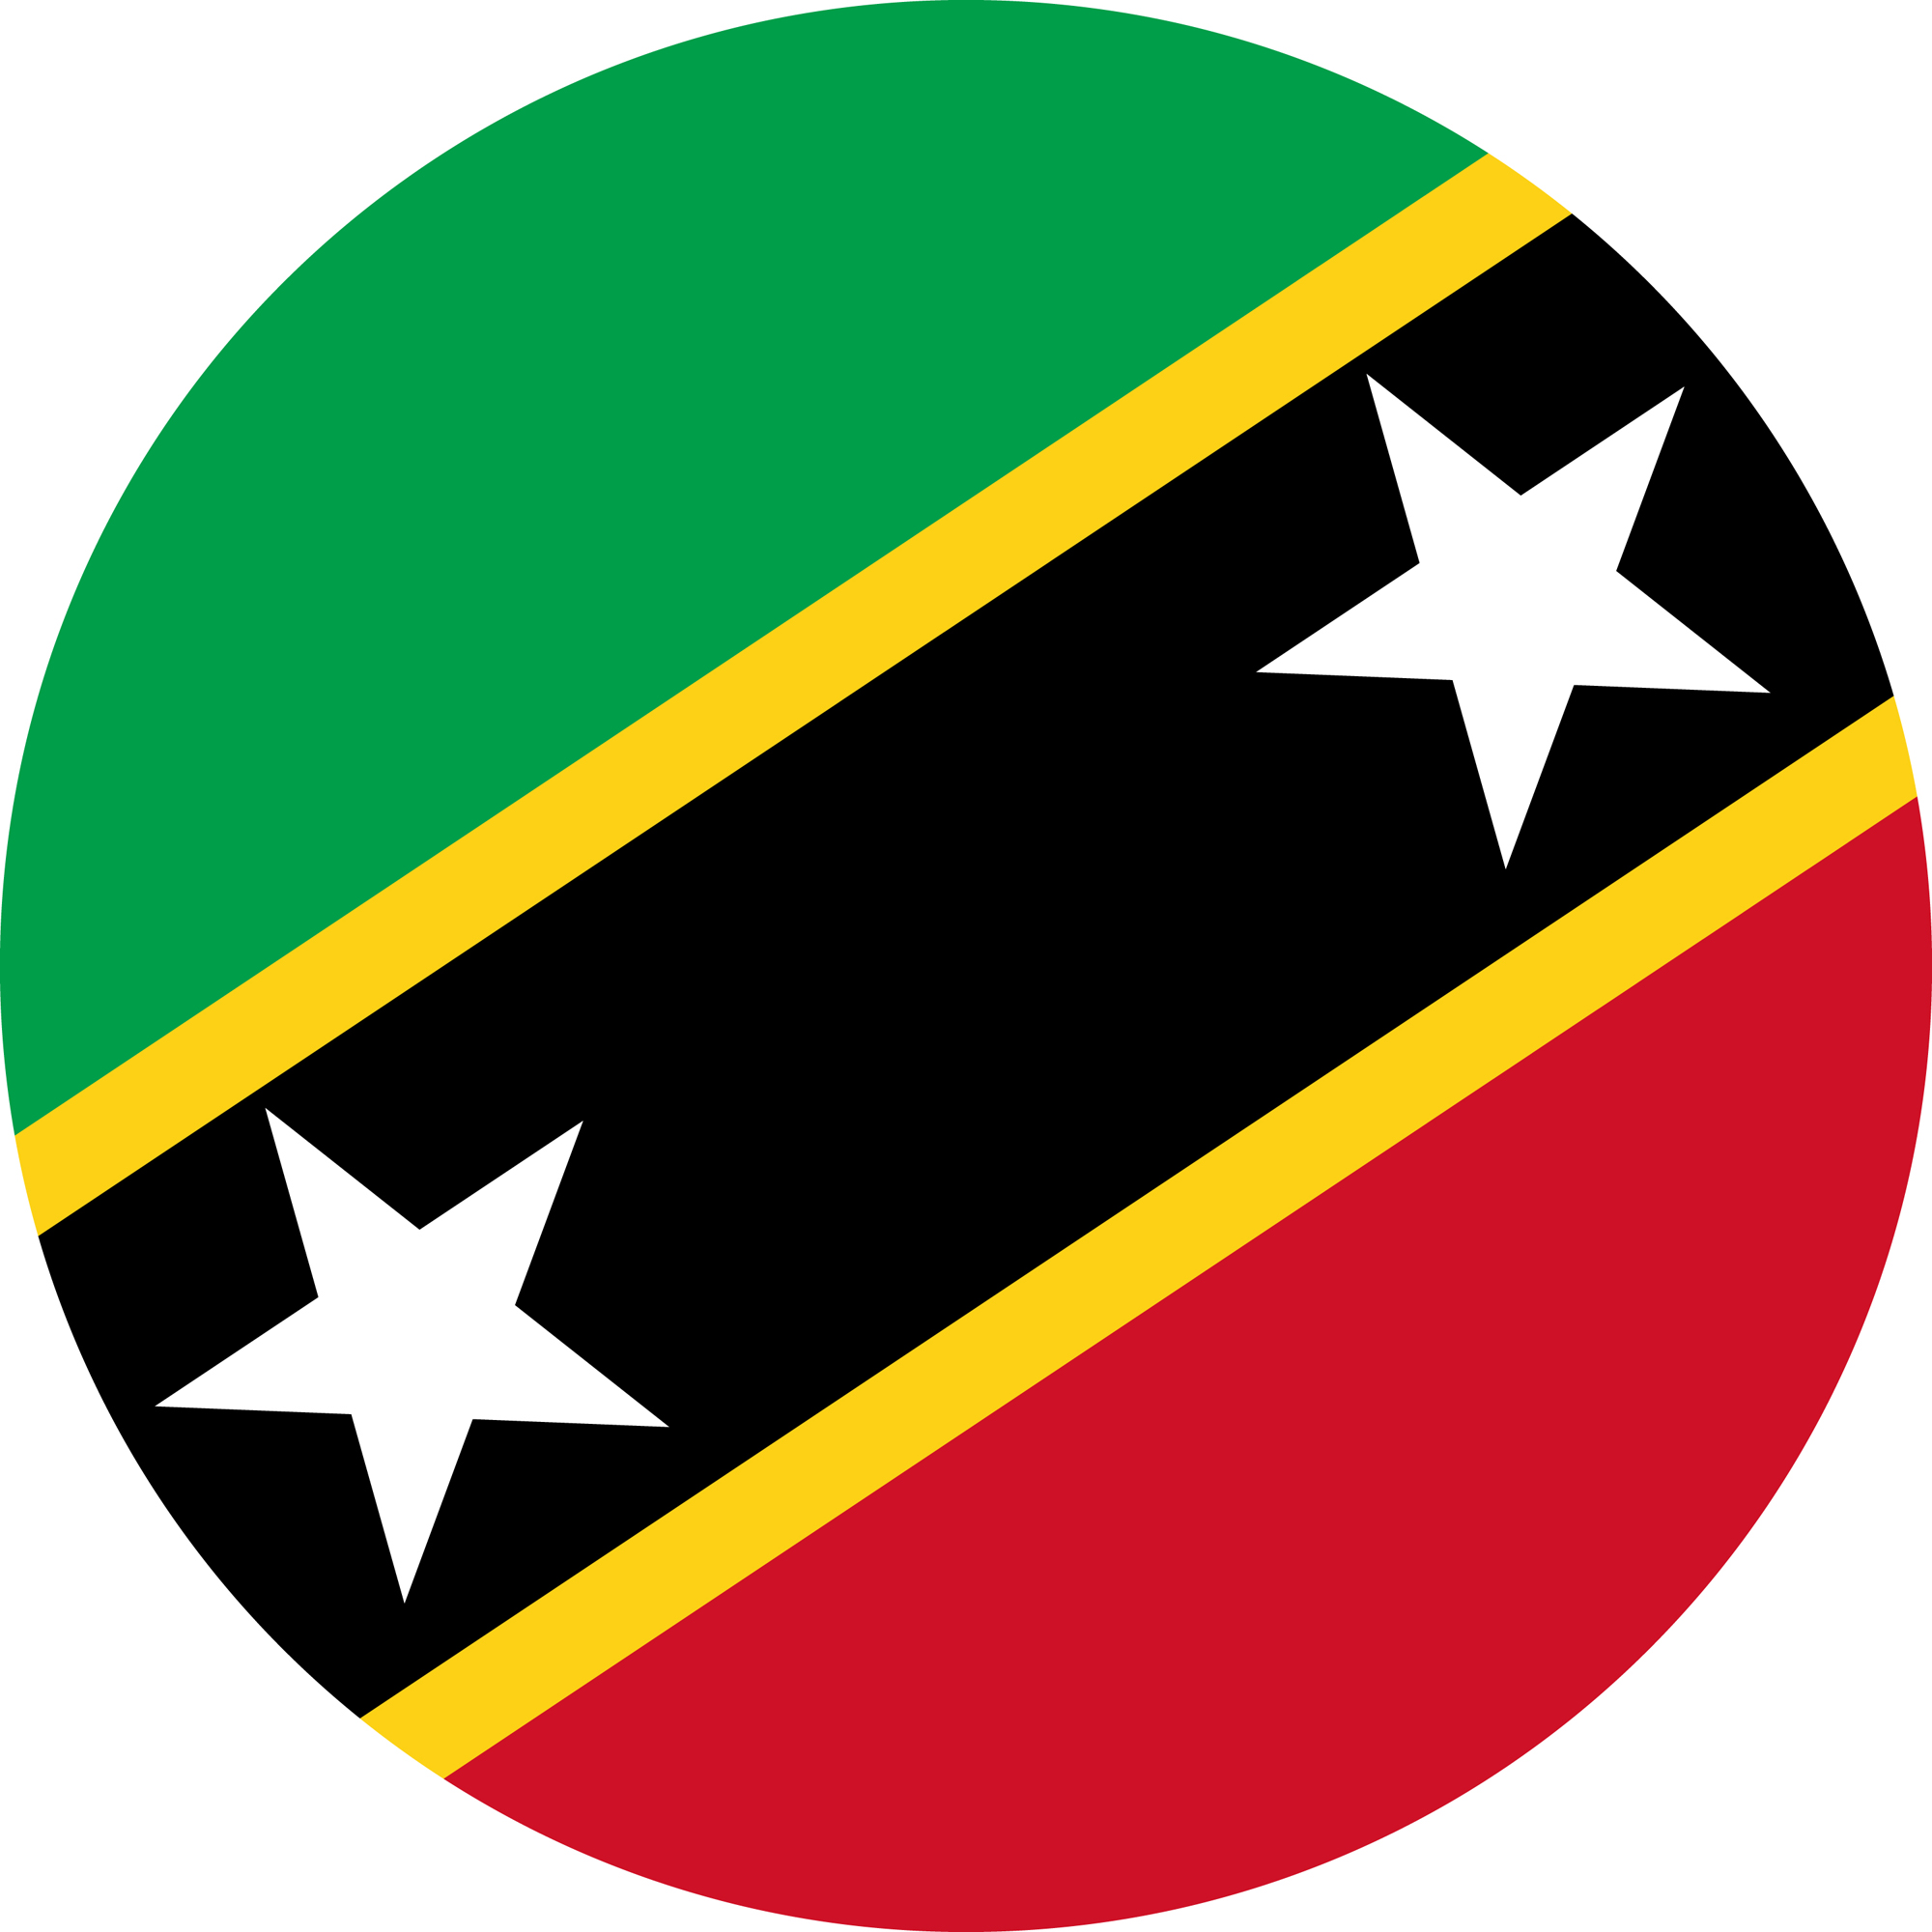 Flag of Saint Kitts and Nevis in a circular shape